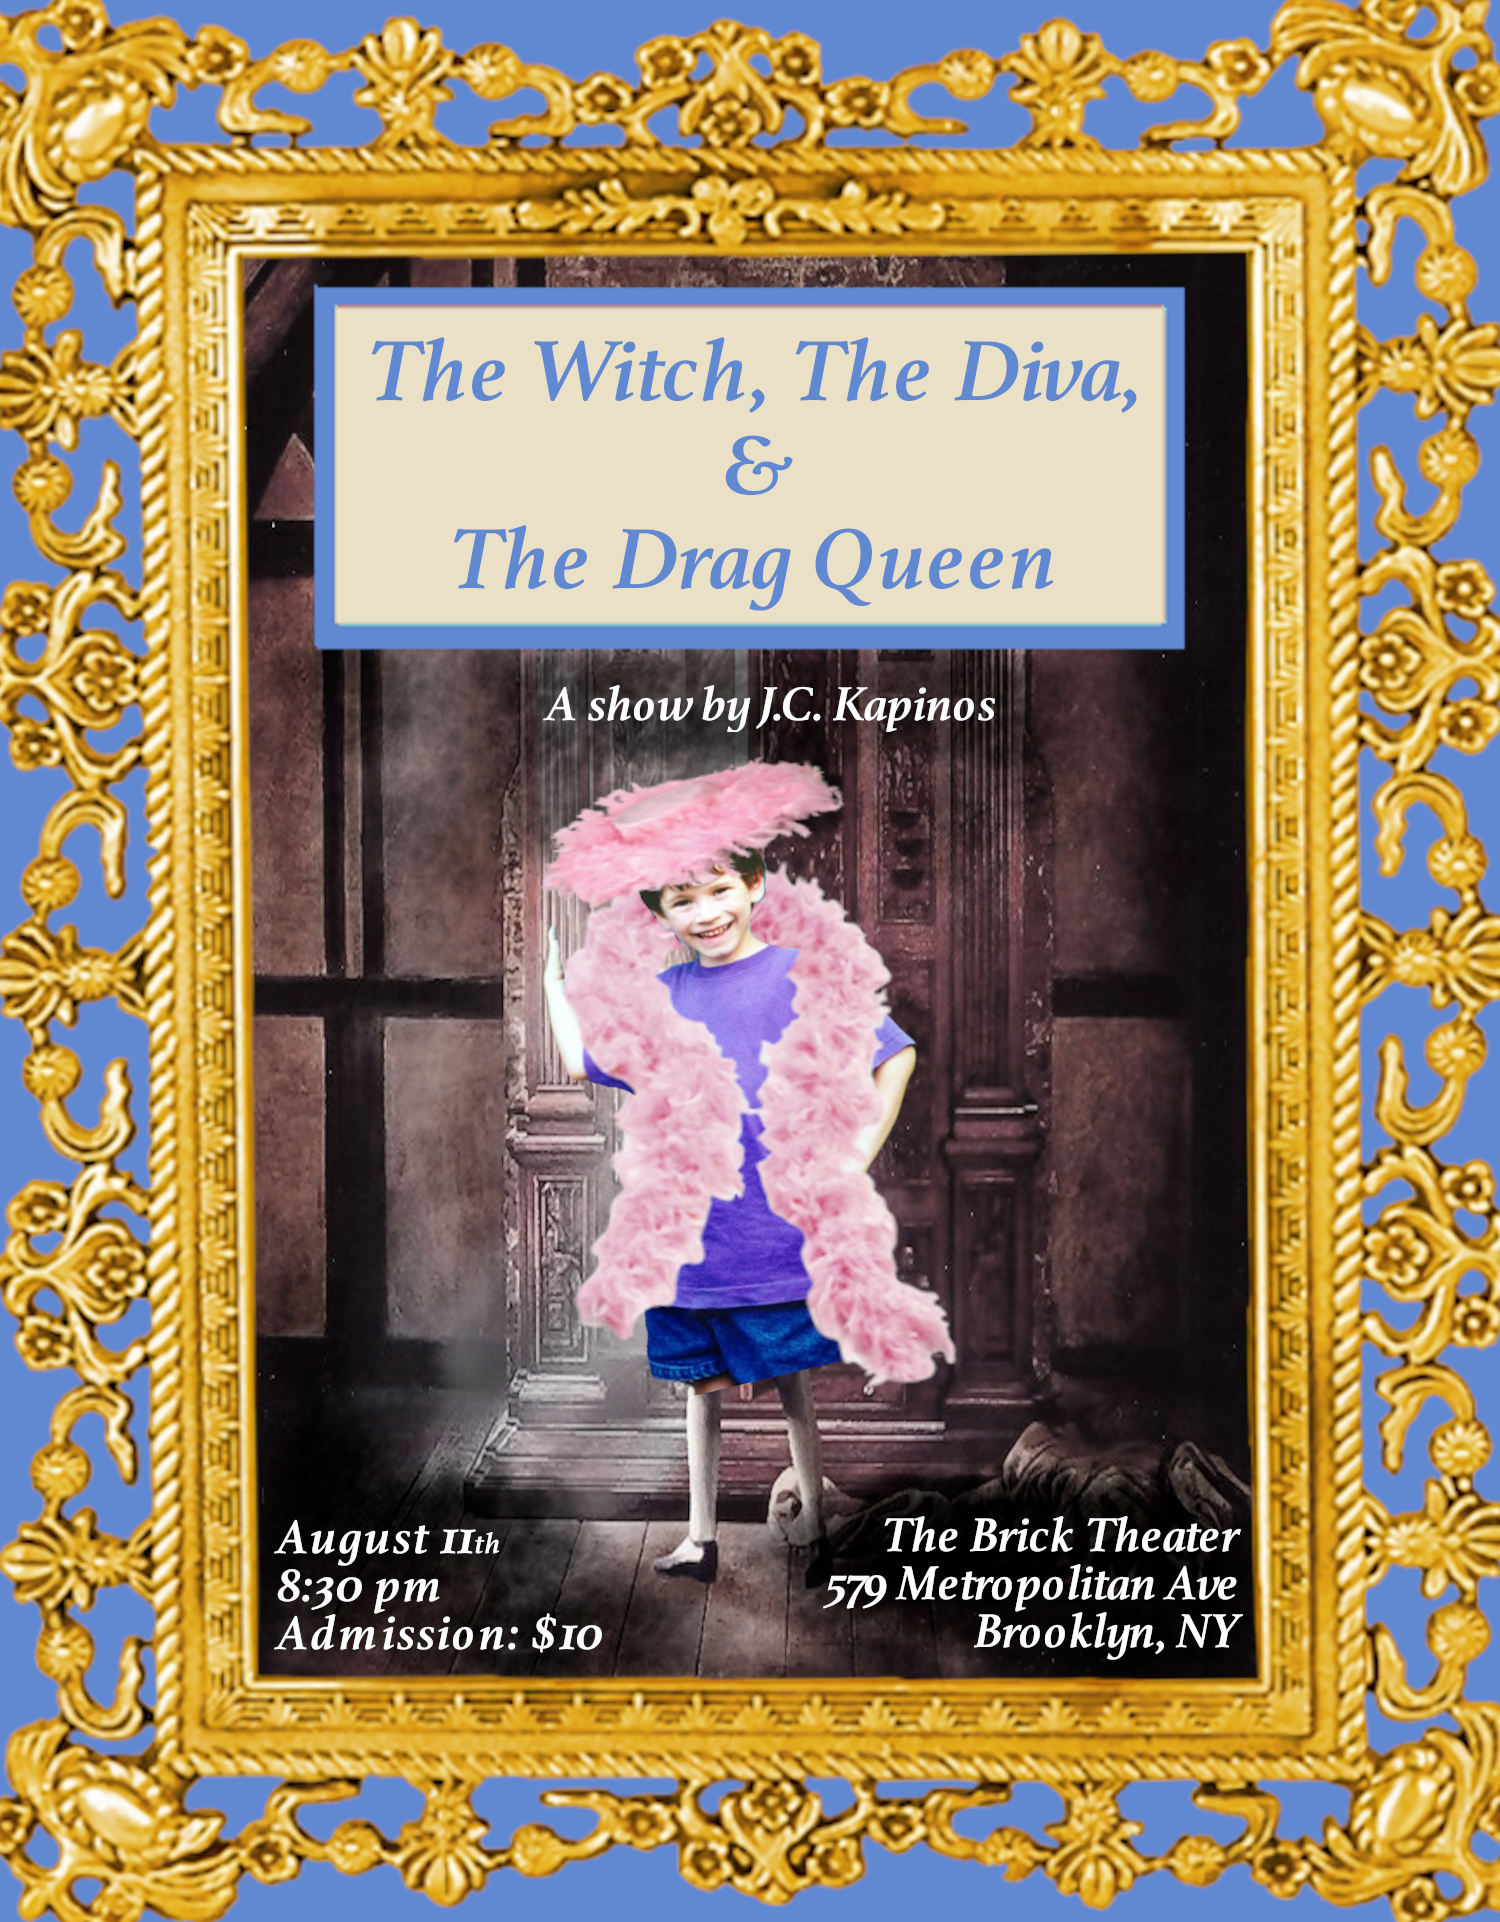 - The Witch, The Diva, & The Drag QueenJoin a fairy and his three powerful guides as they discover how little gay boys are made. Based on the life experiences of Jackson Kapinos, as told by a whimsical witch, a determined diva, and a dramatic drag queen.